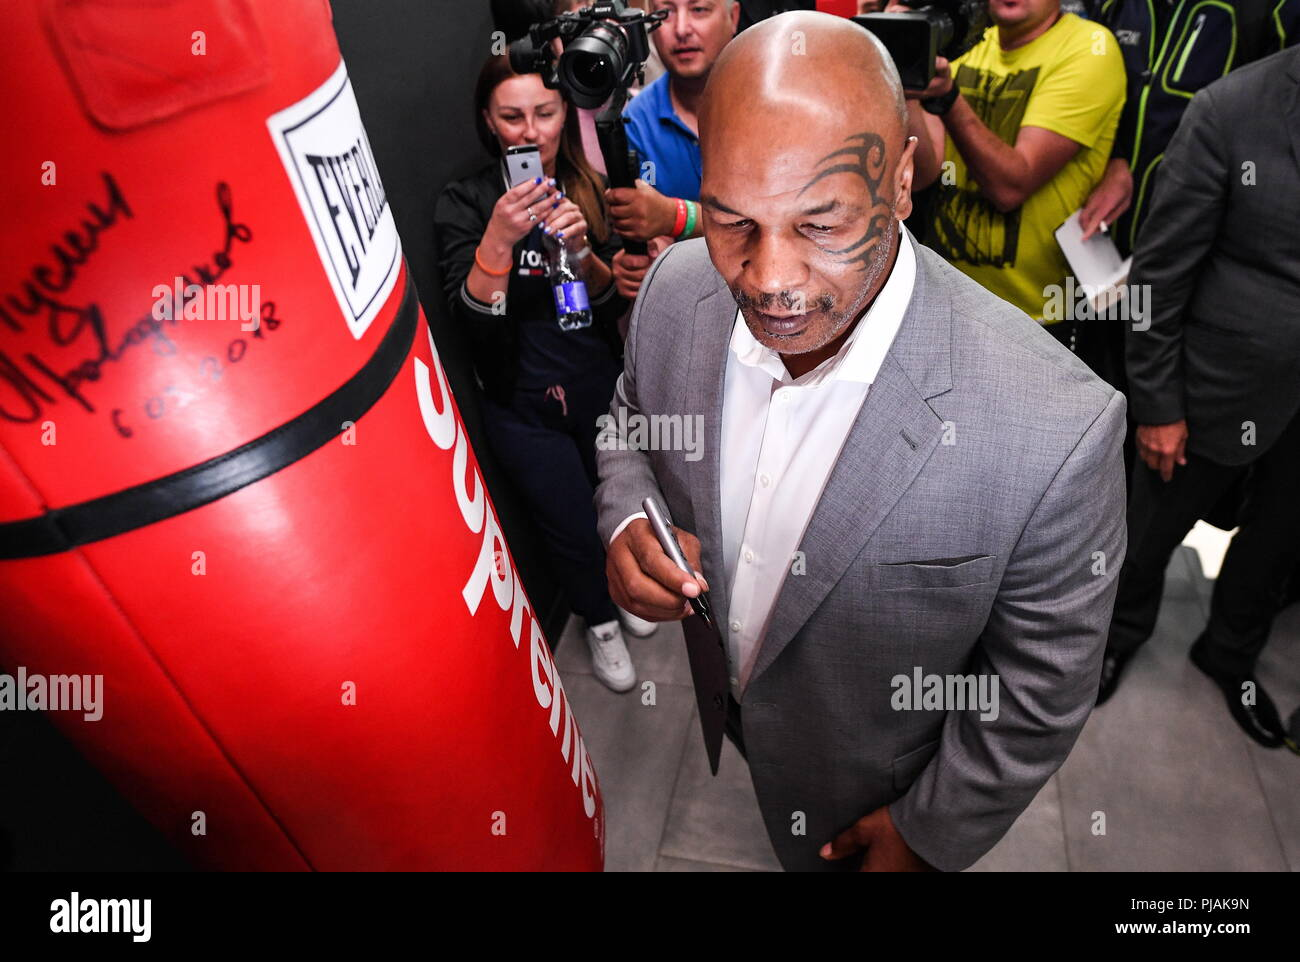 Yekaterinburg, Russia. 06th Sep, 2018. YEKATERINBURG, RUSSIA - SEPTEMBER 6, 2018: American professional boxer Mike Tyson during a boxing masterclass for RCC Boxing Promotions boxers and children at the Martial Arts Academy established by the Russian Copper Company. Donat Sorokin/TASS Credit: ITAR-TASS News Agency/Alamy Live News - Stock Image